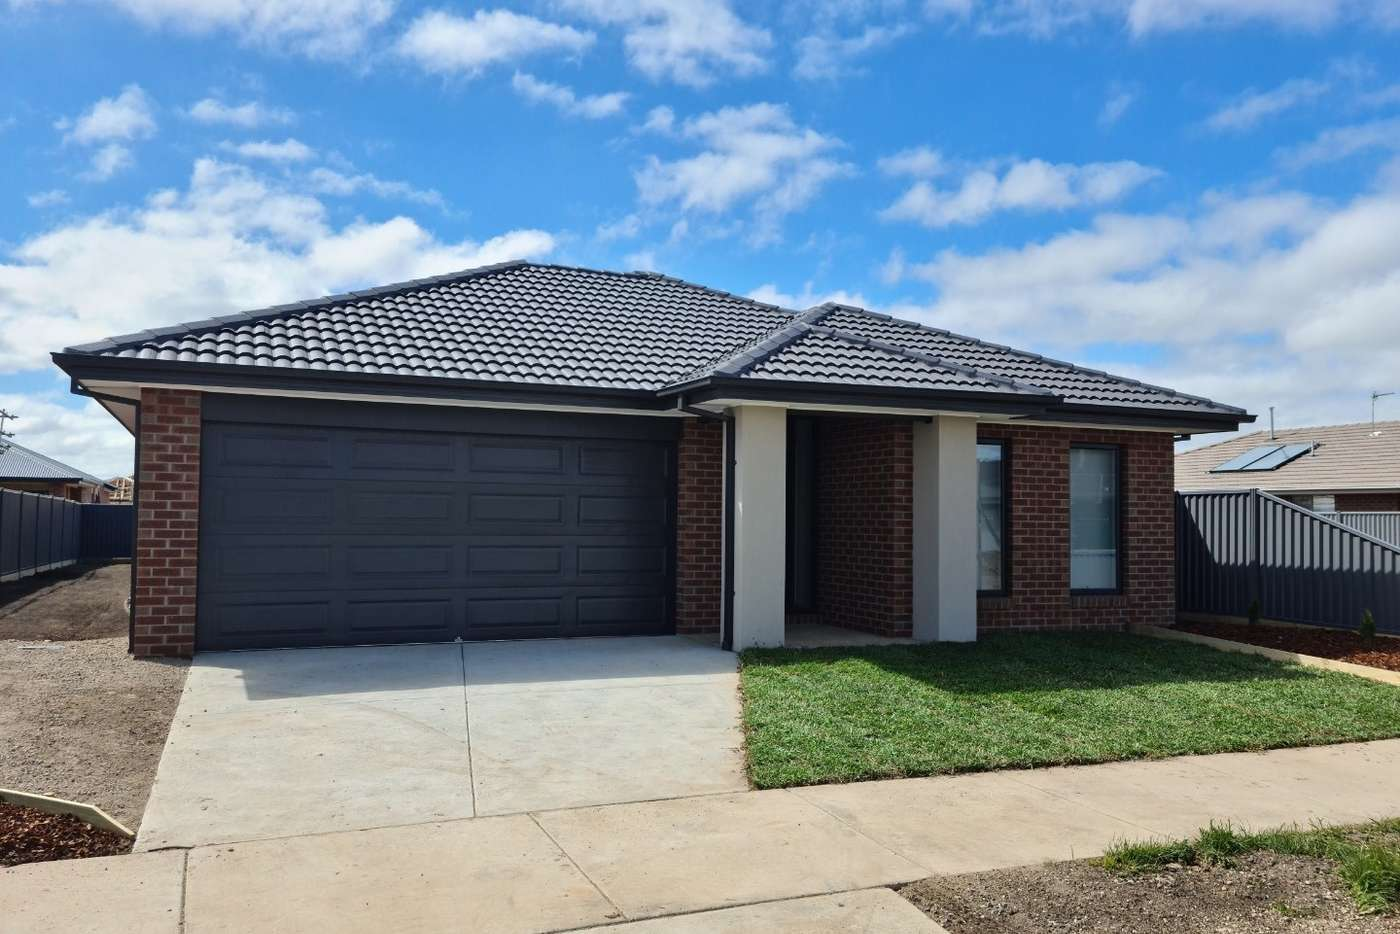 Main view of Homely house listing, 34 Kalamata Avenue, Alfredton VIC 3350